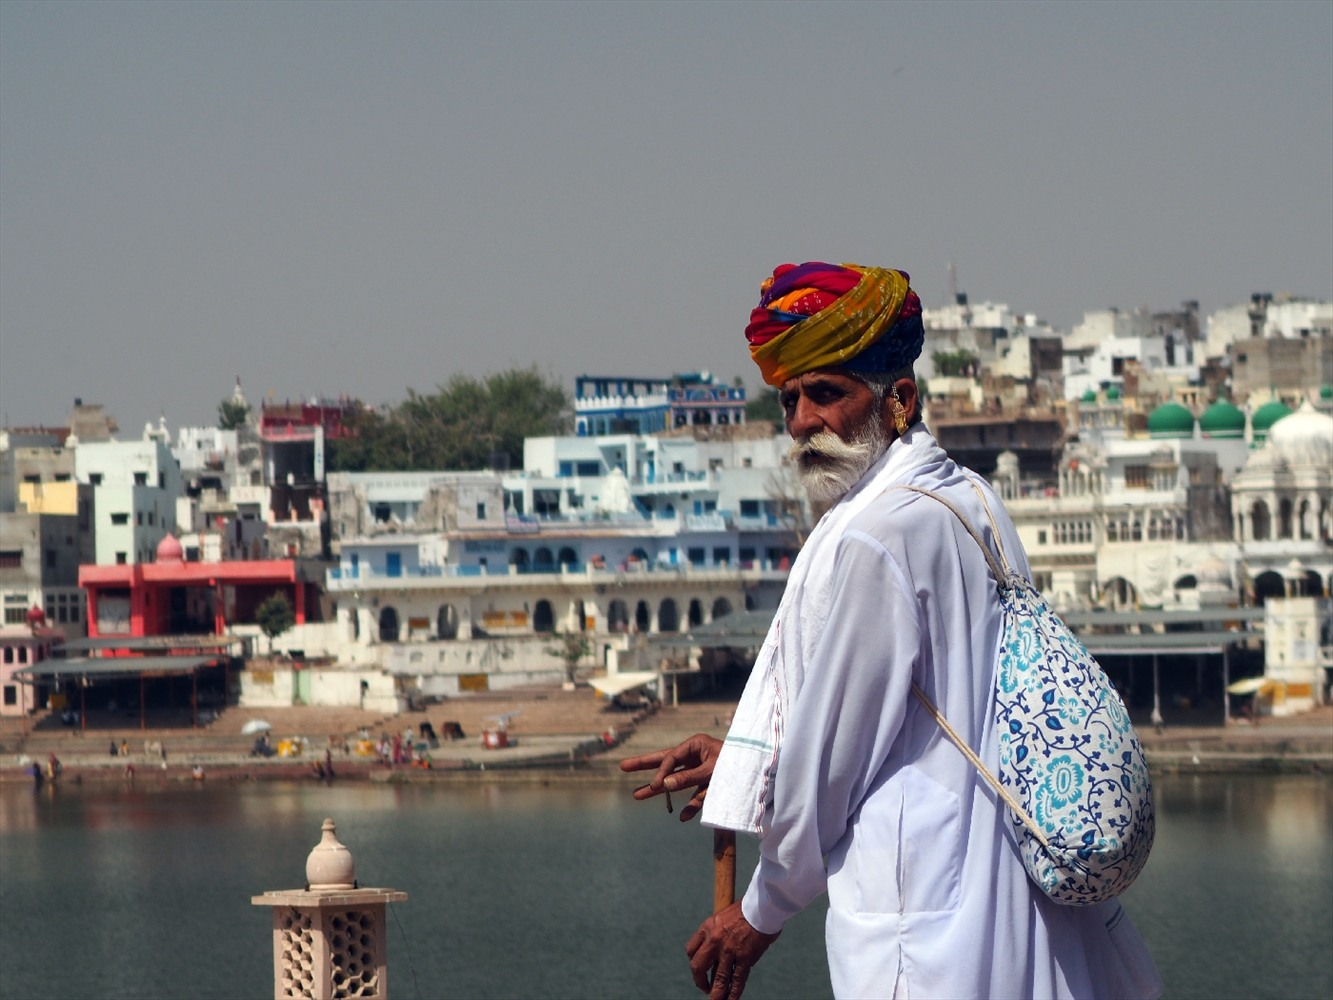 Pushkar_Rajasthan, india in january